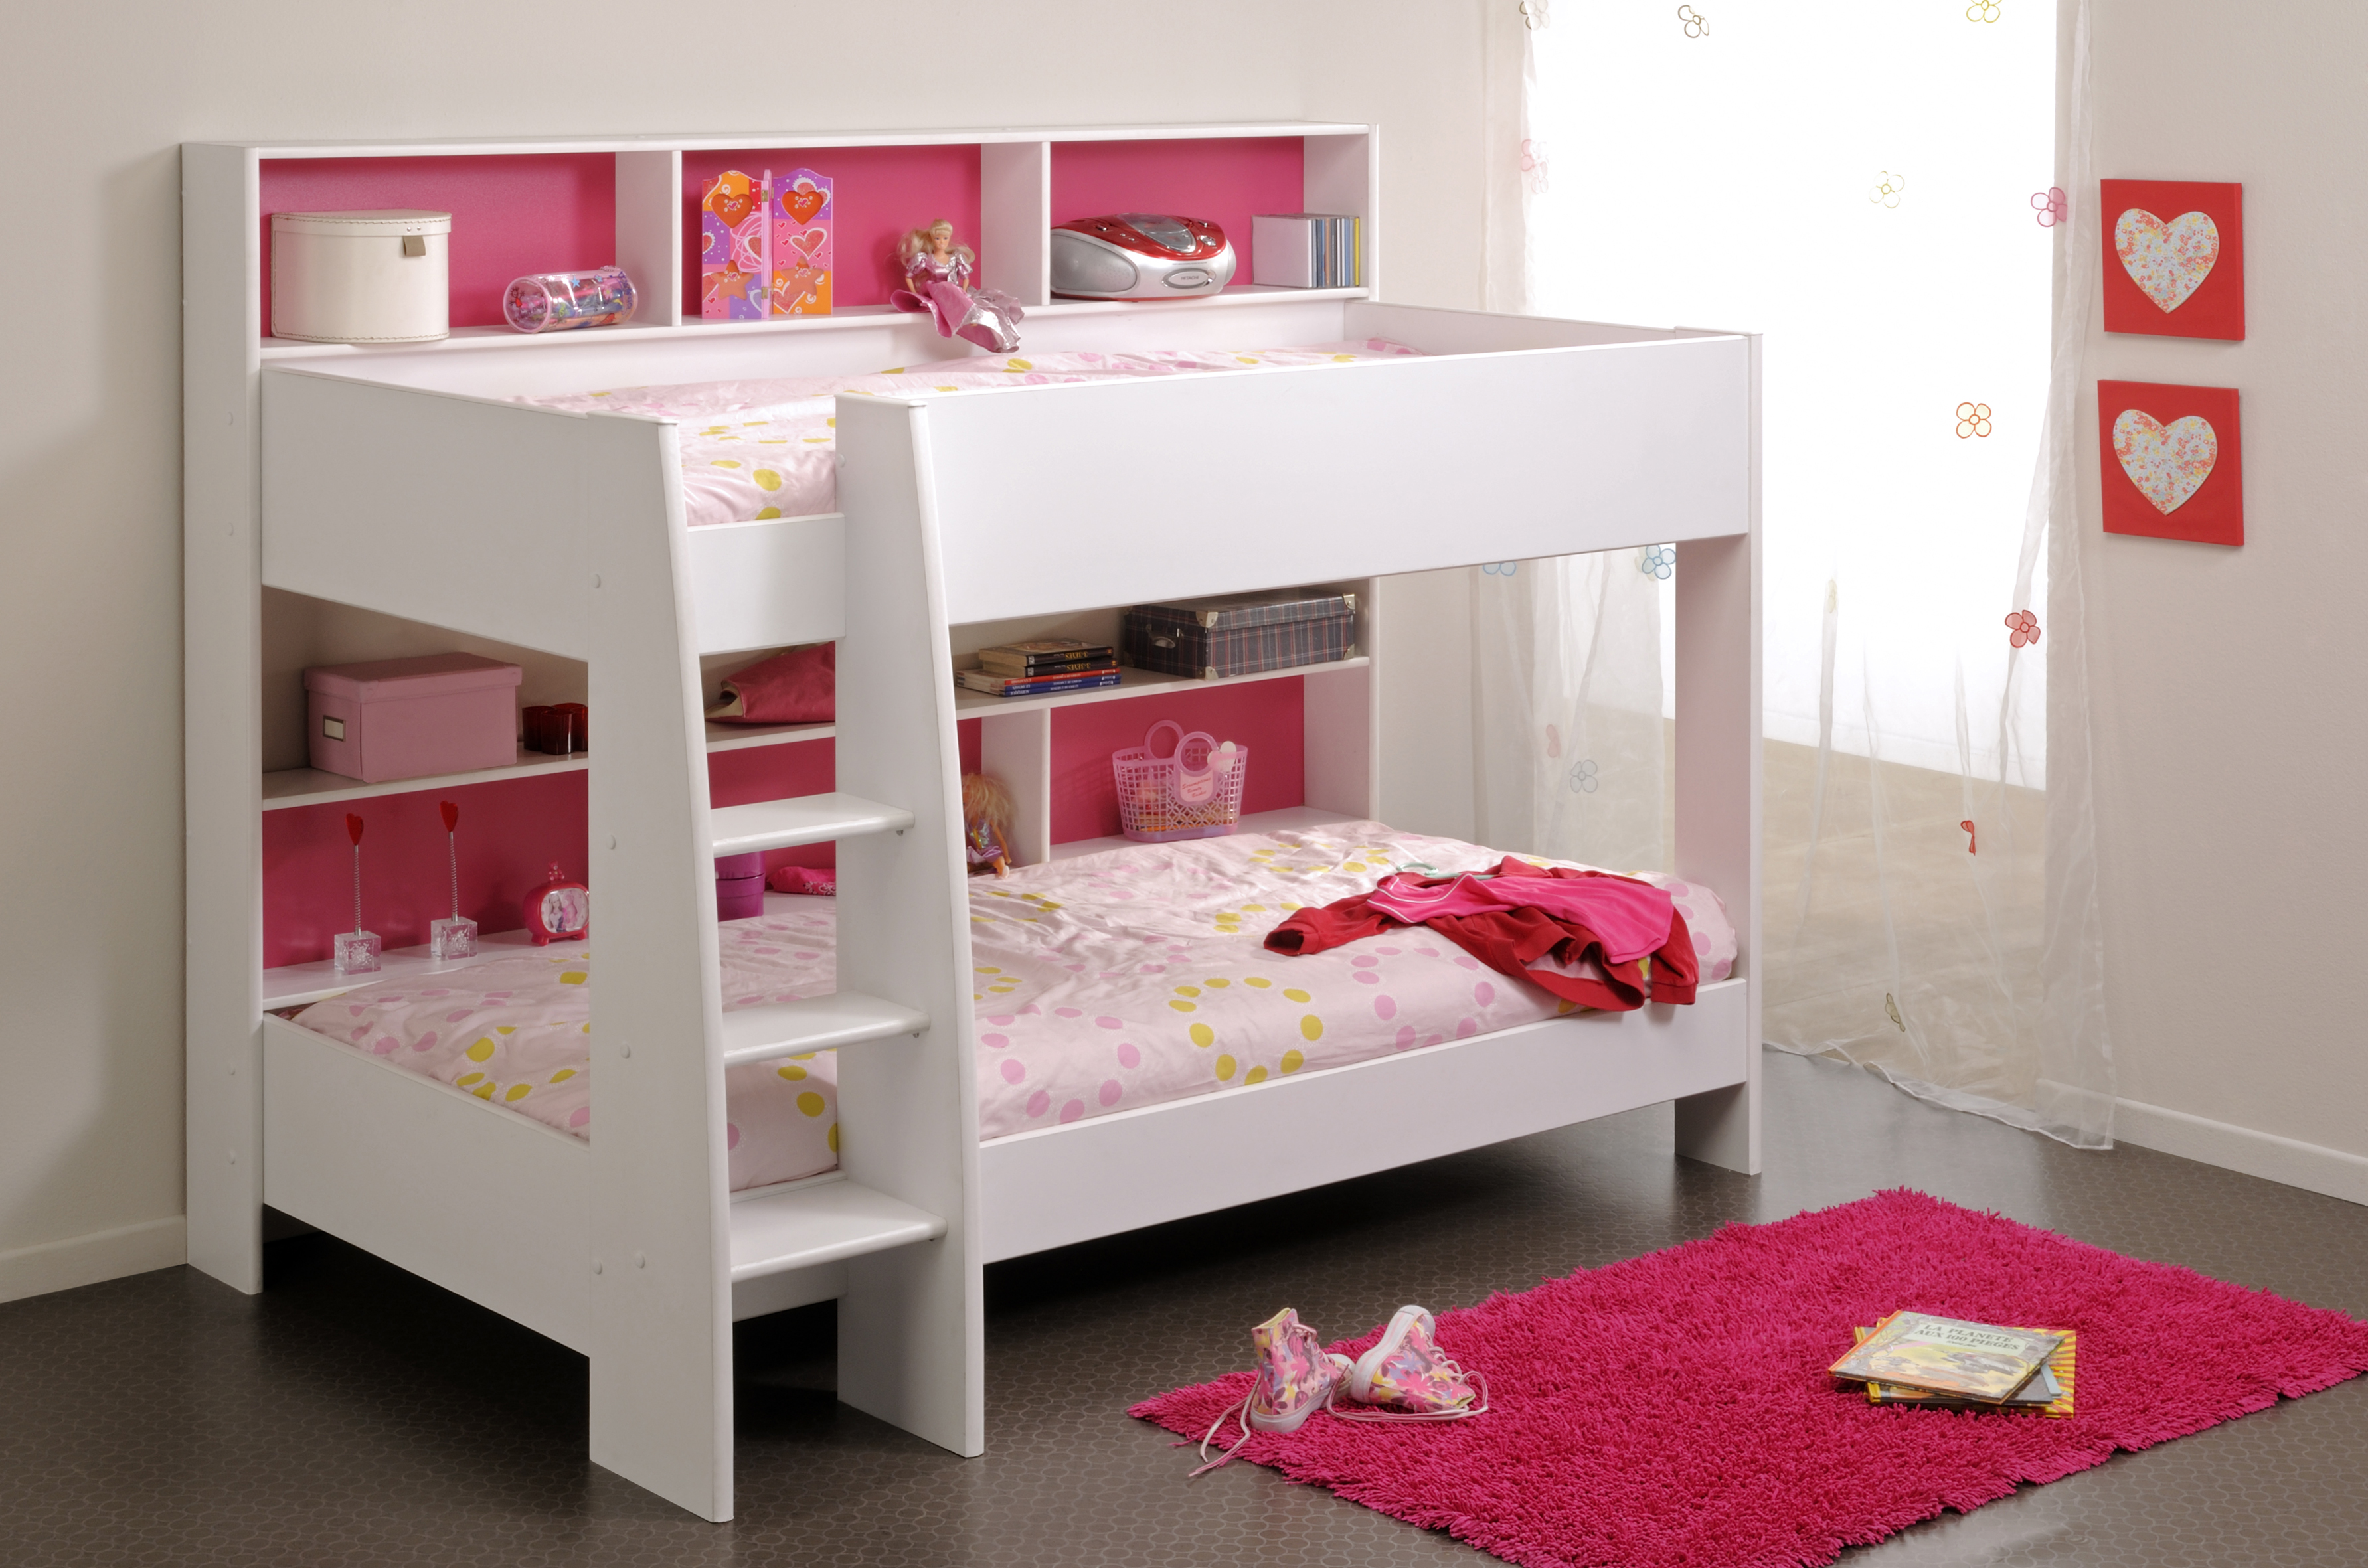 Space Function And Fun Bunk Beds Vs Twin Beds My